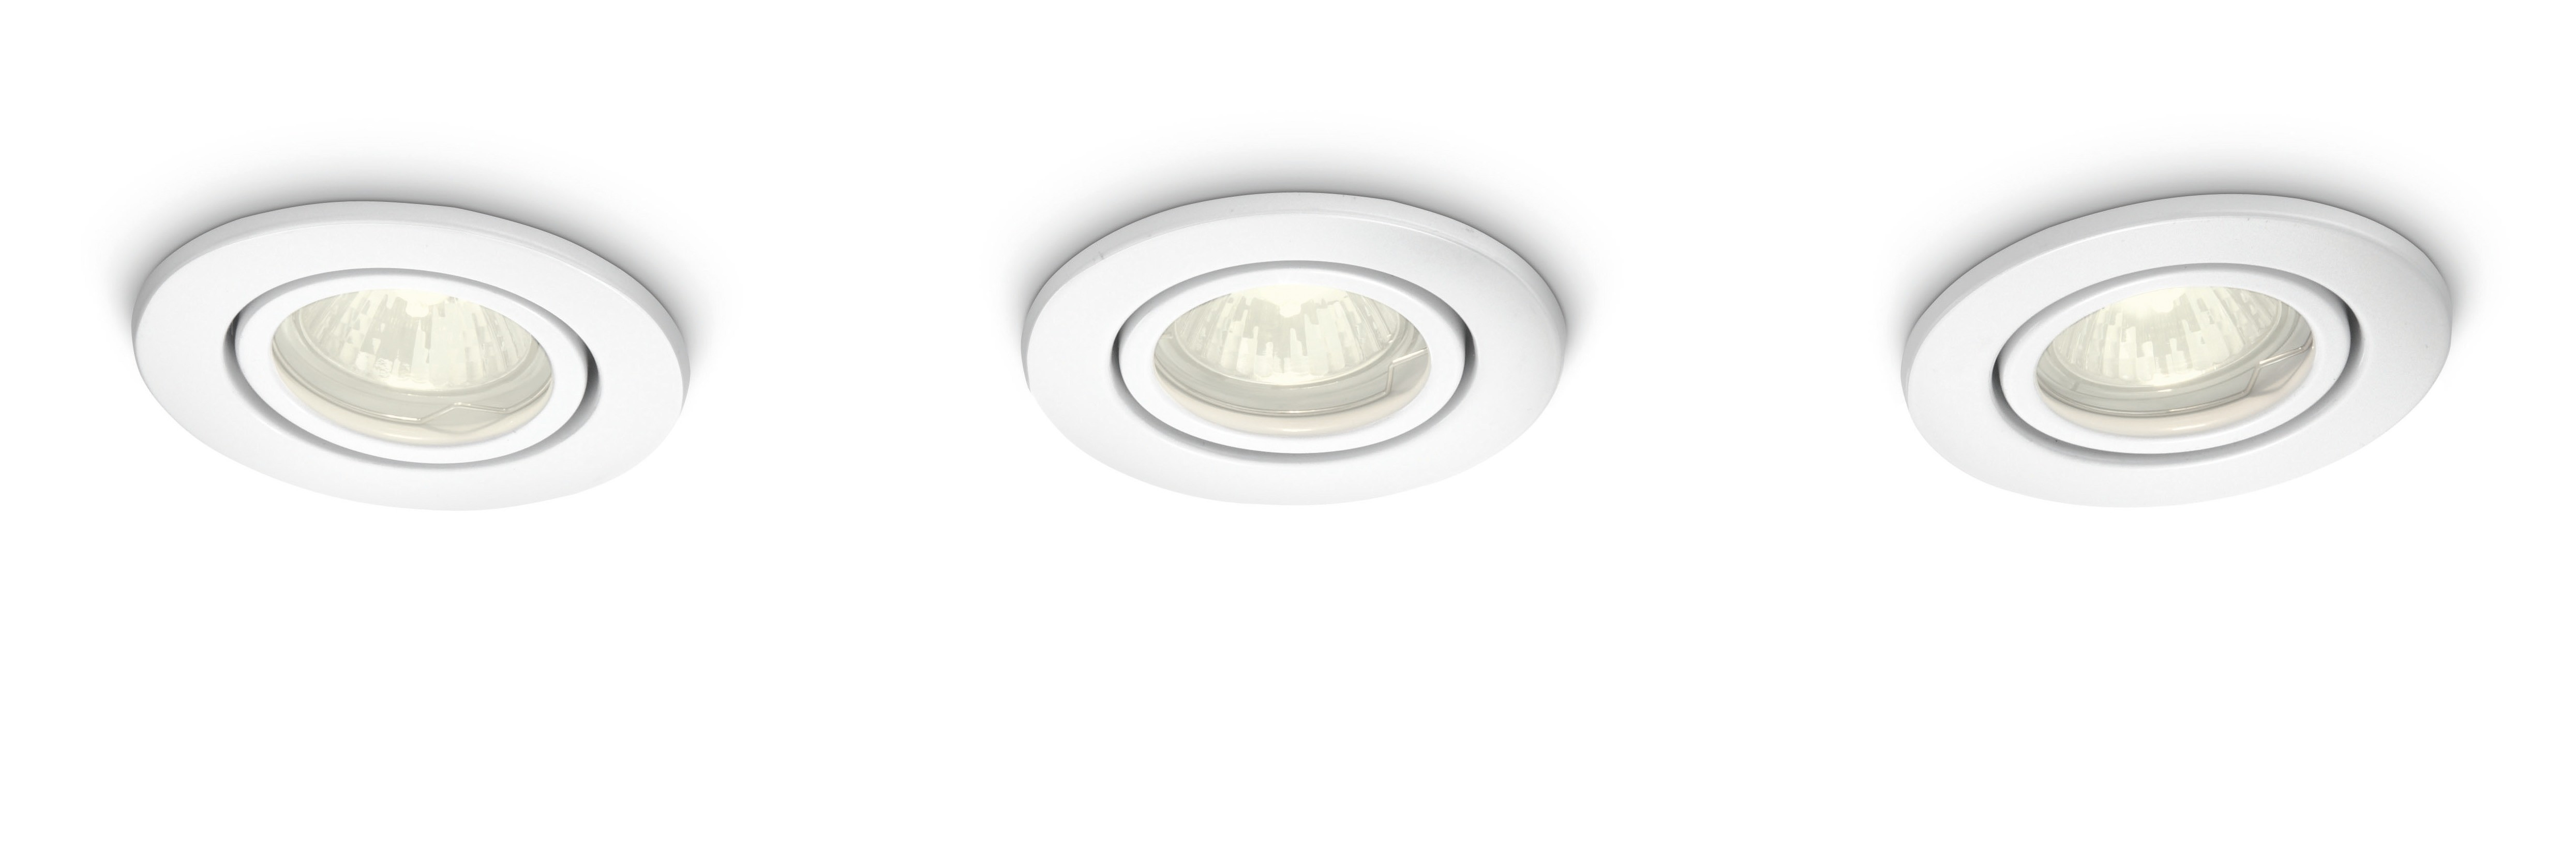 Led Spots Aansluiten Led Spots Led Spots Ip65